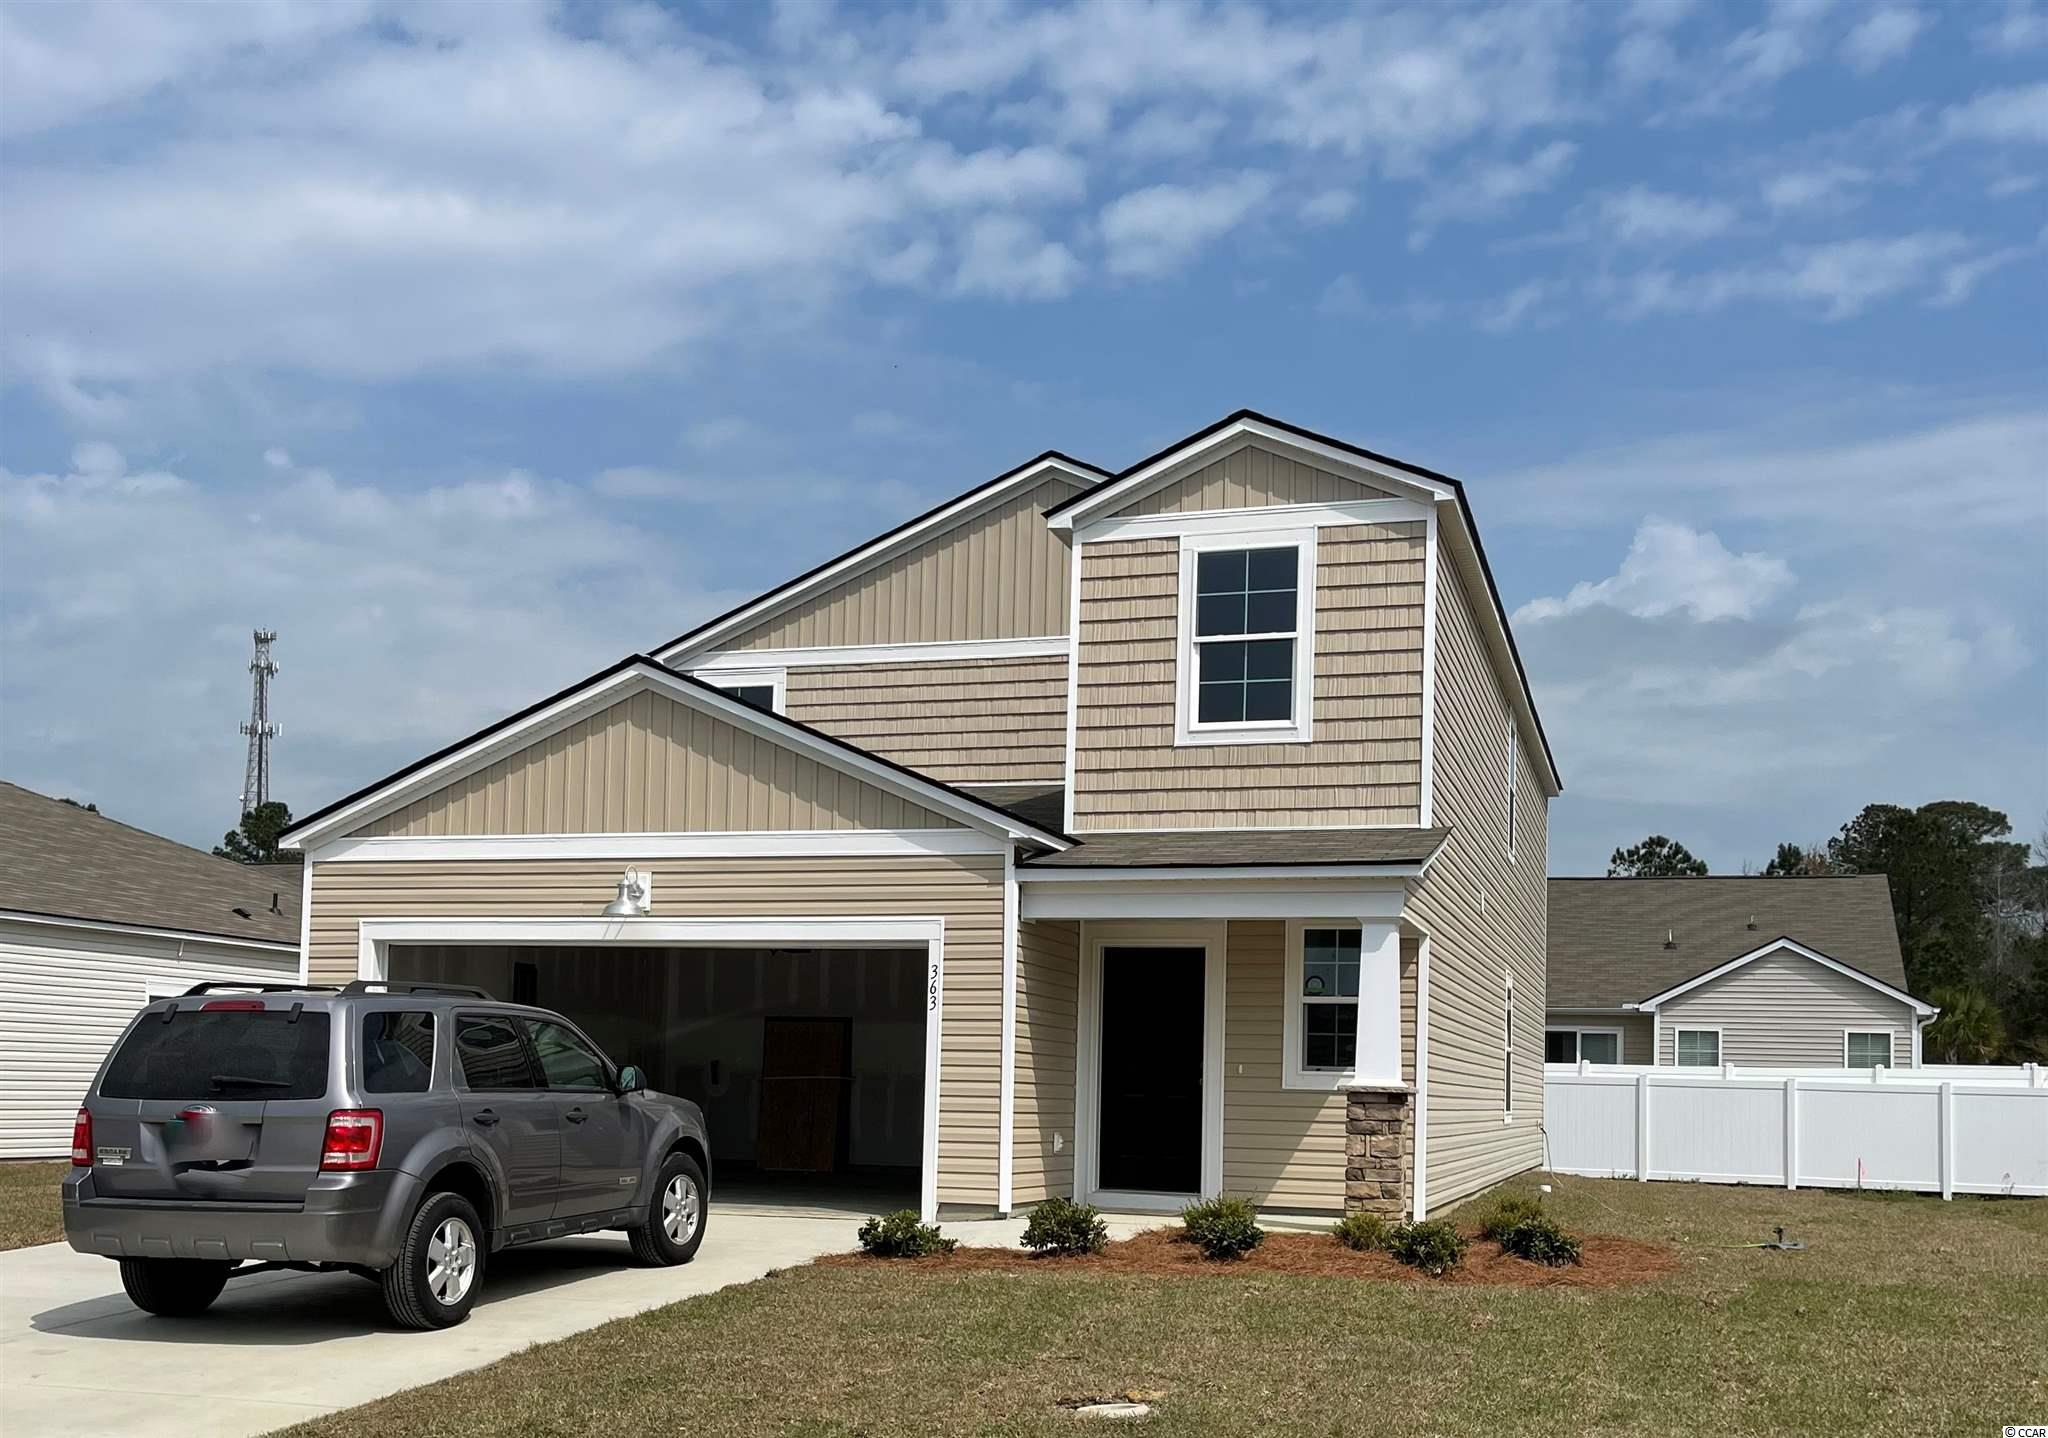 """Under construction - Ready February 2021. The Columbia is a Two Story floor plan that features 5 bedrooms, 2 bathrooms and a Powder Room, The Owners Suite is located on the ground floor, which includes a spacious Master Bath and an oversized walk in Closet. The Owners suite bathroom features double sinks an elevated vanity and a 5' shower. This open concept home hallmarks 36"""" stylish white cabinets, a 3 x 6 subway tile back splash in the kitchen, granite counter tops in the kitchen, Shaw laminate flooring in the main living areas, GE  Stainless steel appliances including a Gas Range, Microwave Range Hood, Dishwasher, and Disposal.  This home also features LED recess lighting, Moen faucets and towel hooks, elongated toilets with soft close lids, a Rinnai tankless gas water heater, and automatic garage door opener. Pictures are of a previously built home that may have additional upgrades and are for illustrative purposes only."""